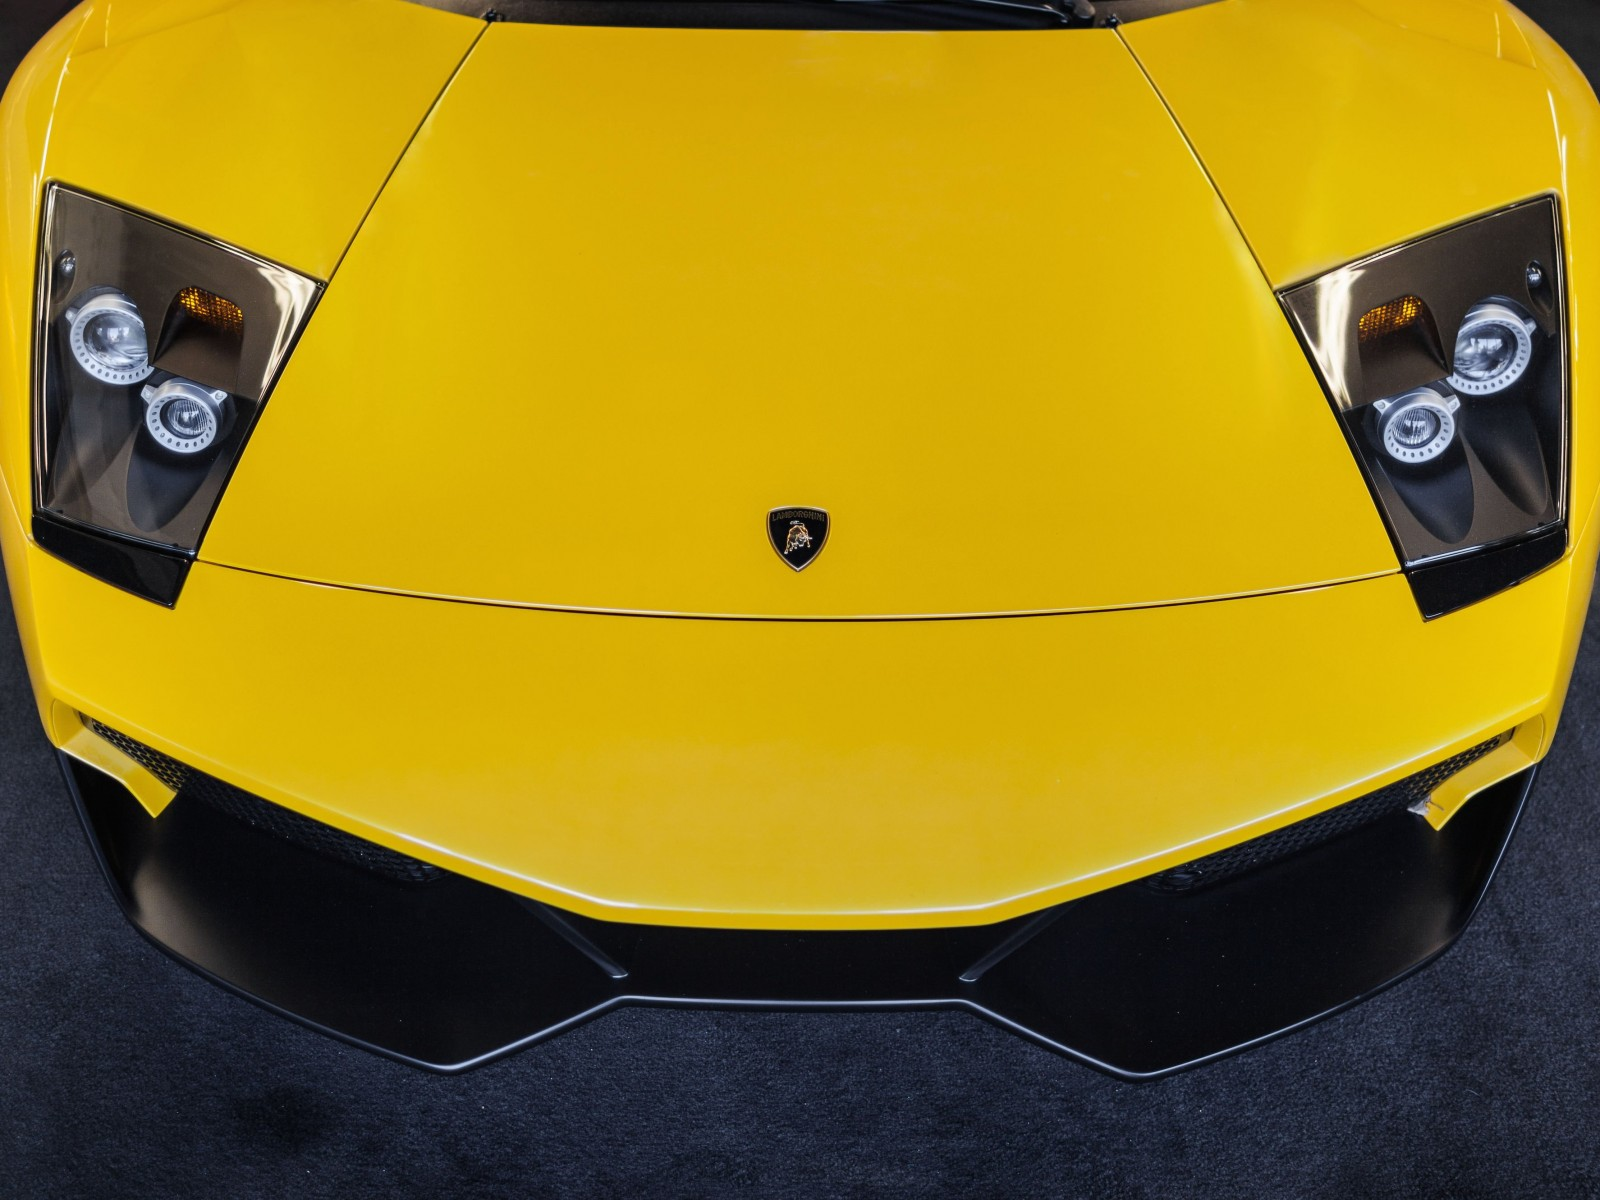 Lamborghini Murcielago LP670 Front Wallpaper for Desktop 1600x1200